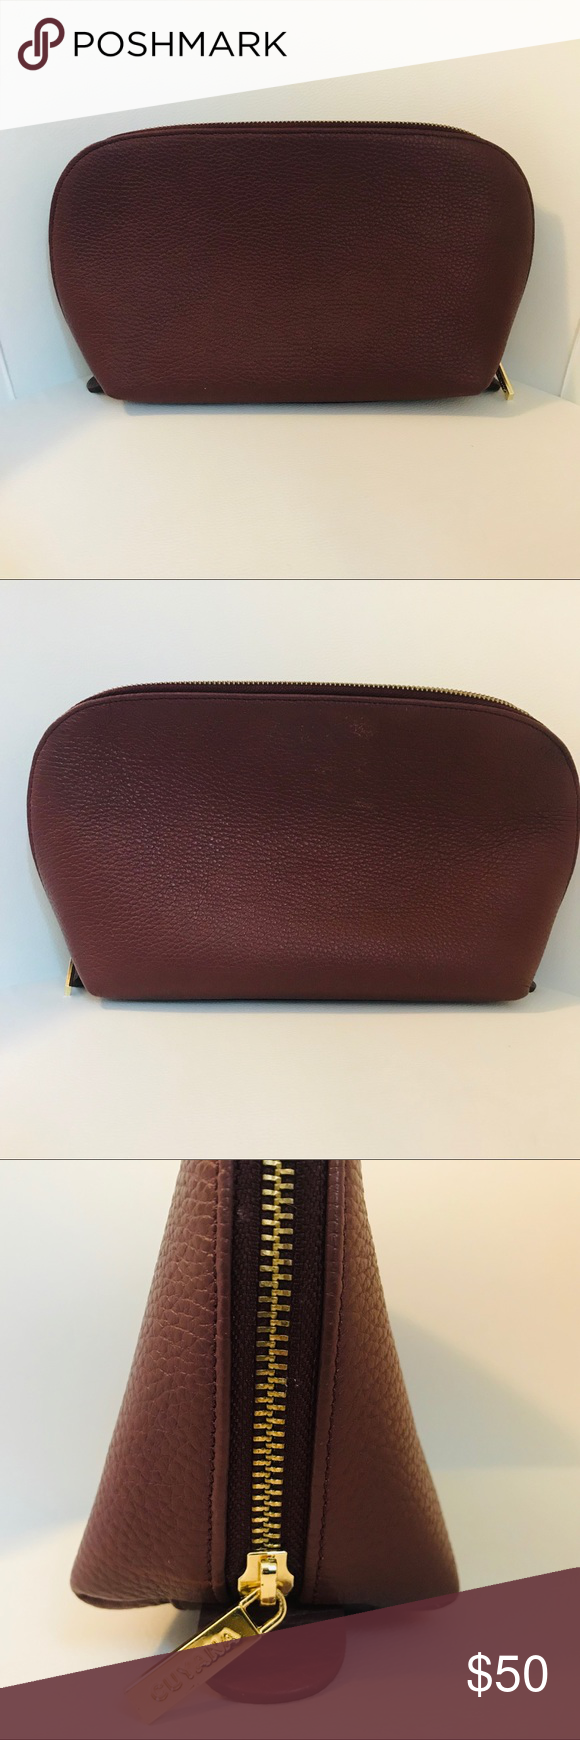 Cuyana Large Travel Bag Cosmetic Toiletries Clutch Large